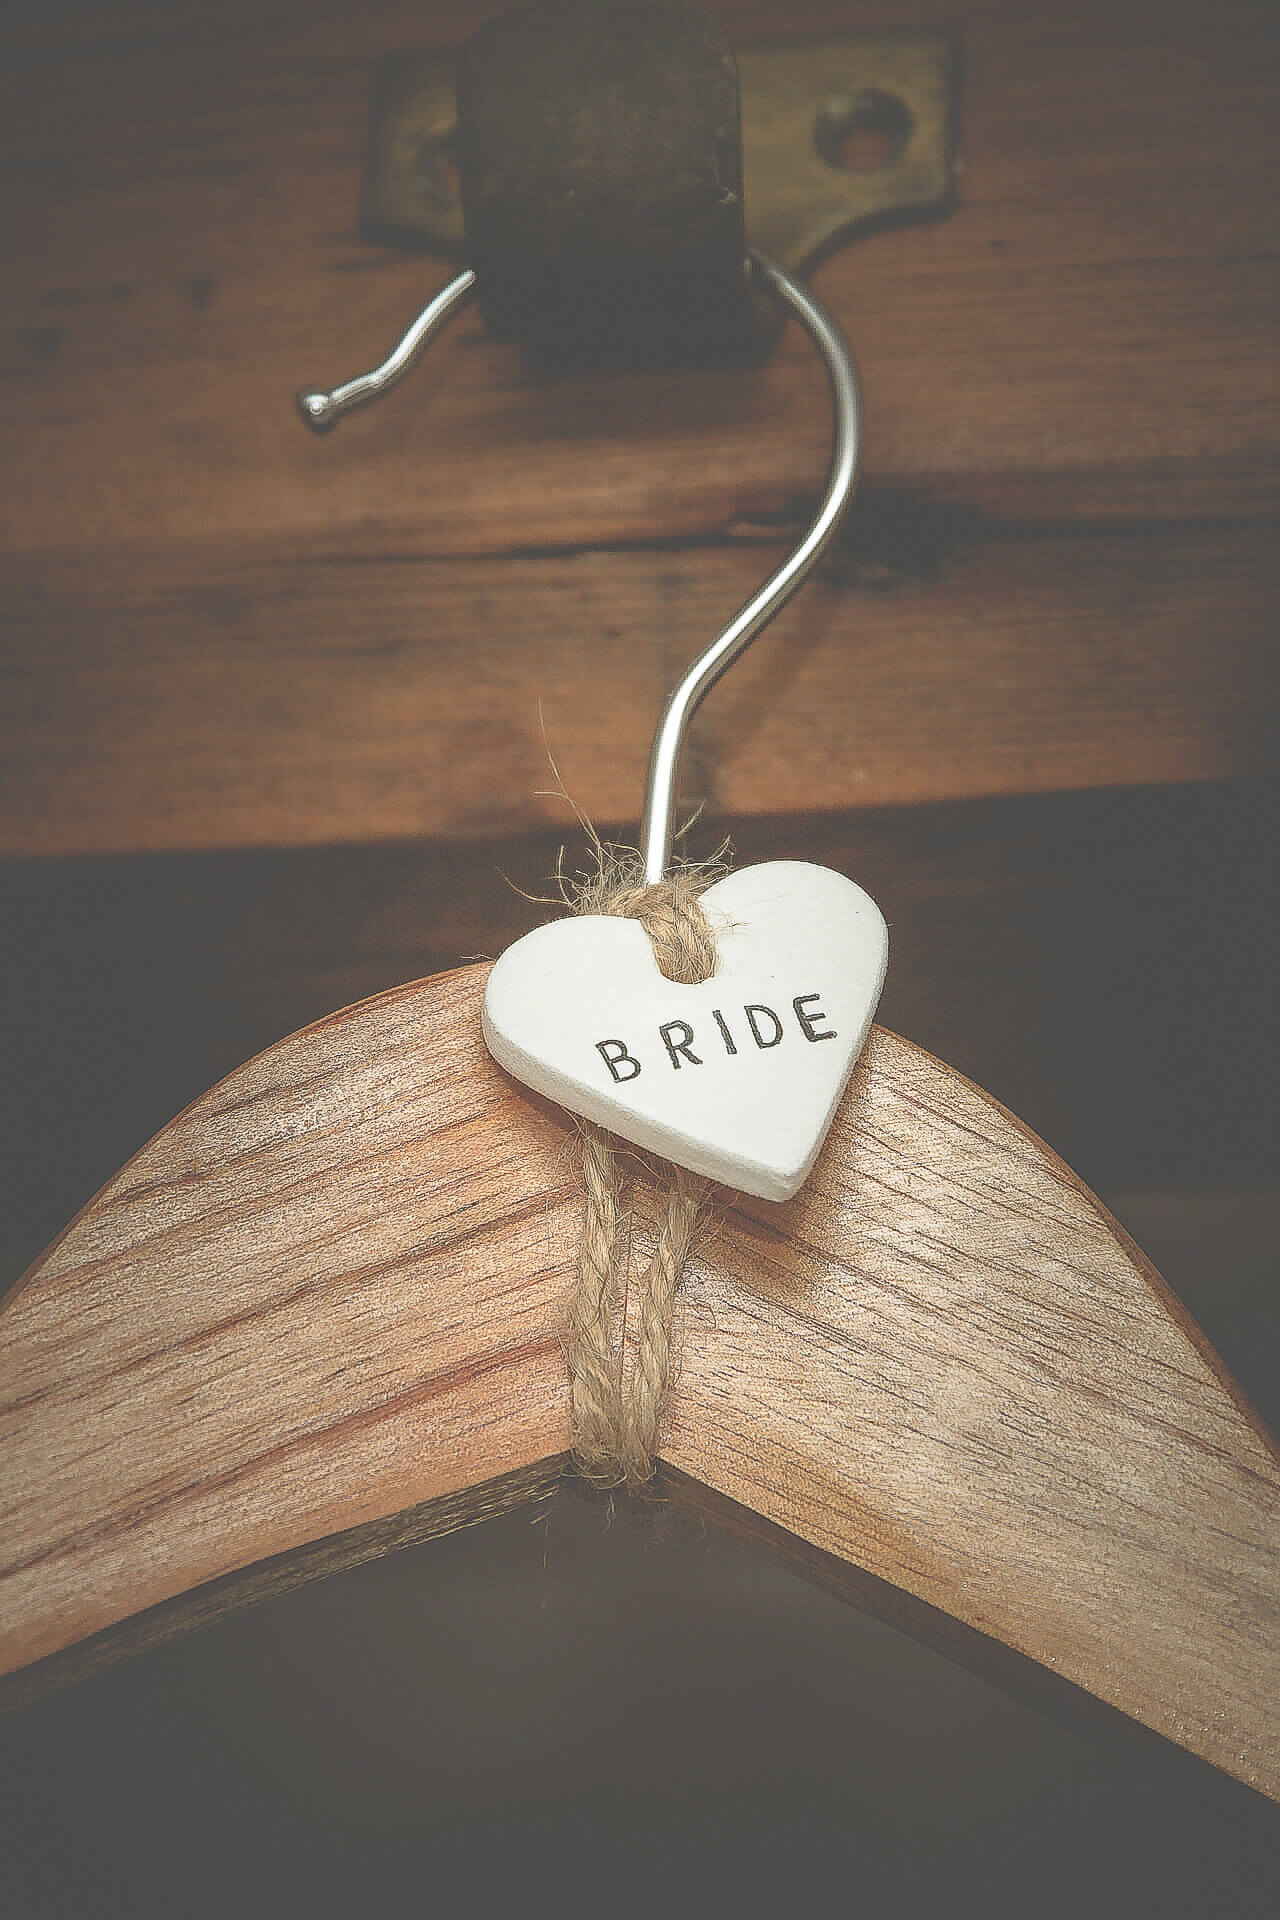 Close up image of the coat hanger holding the Bridal Dress. It has a small white ceramic heart attached to it on which is written Bride.